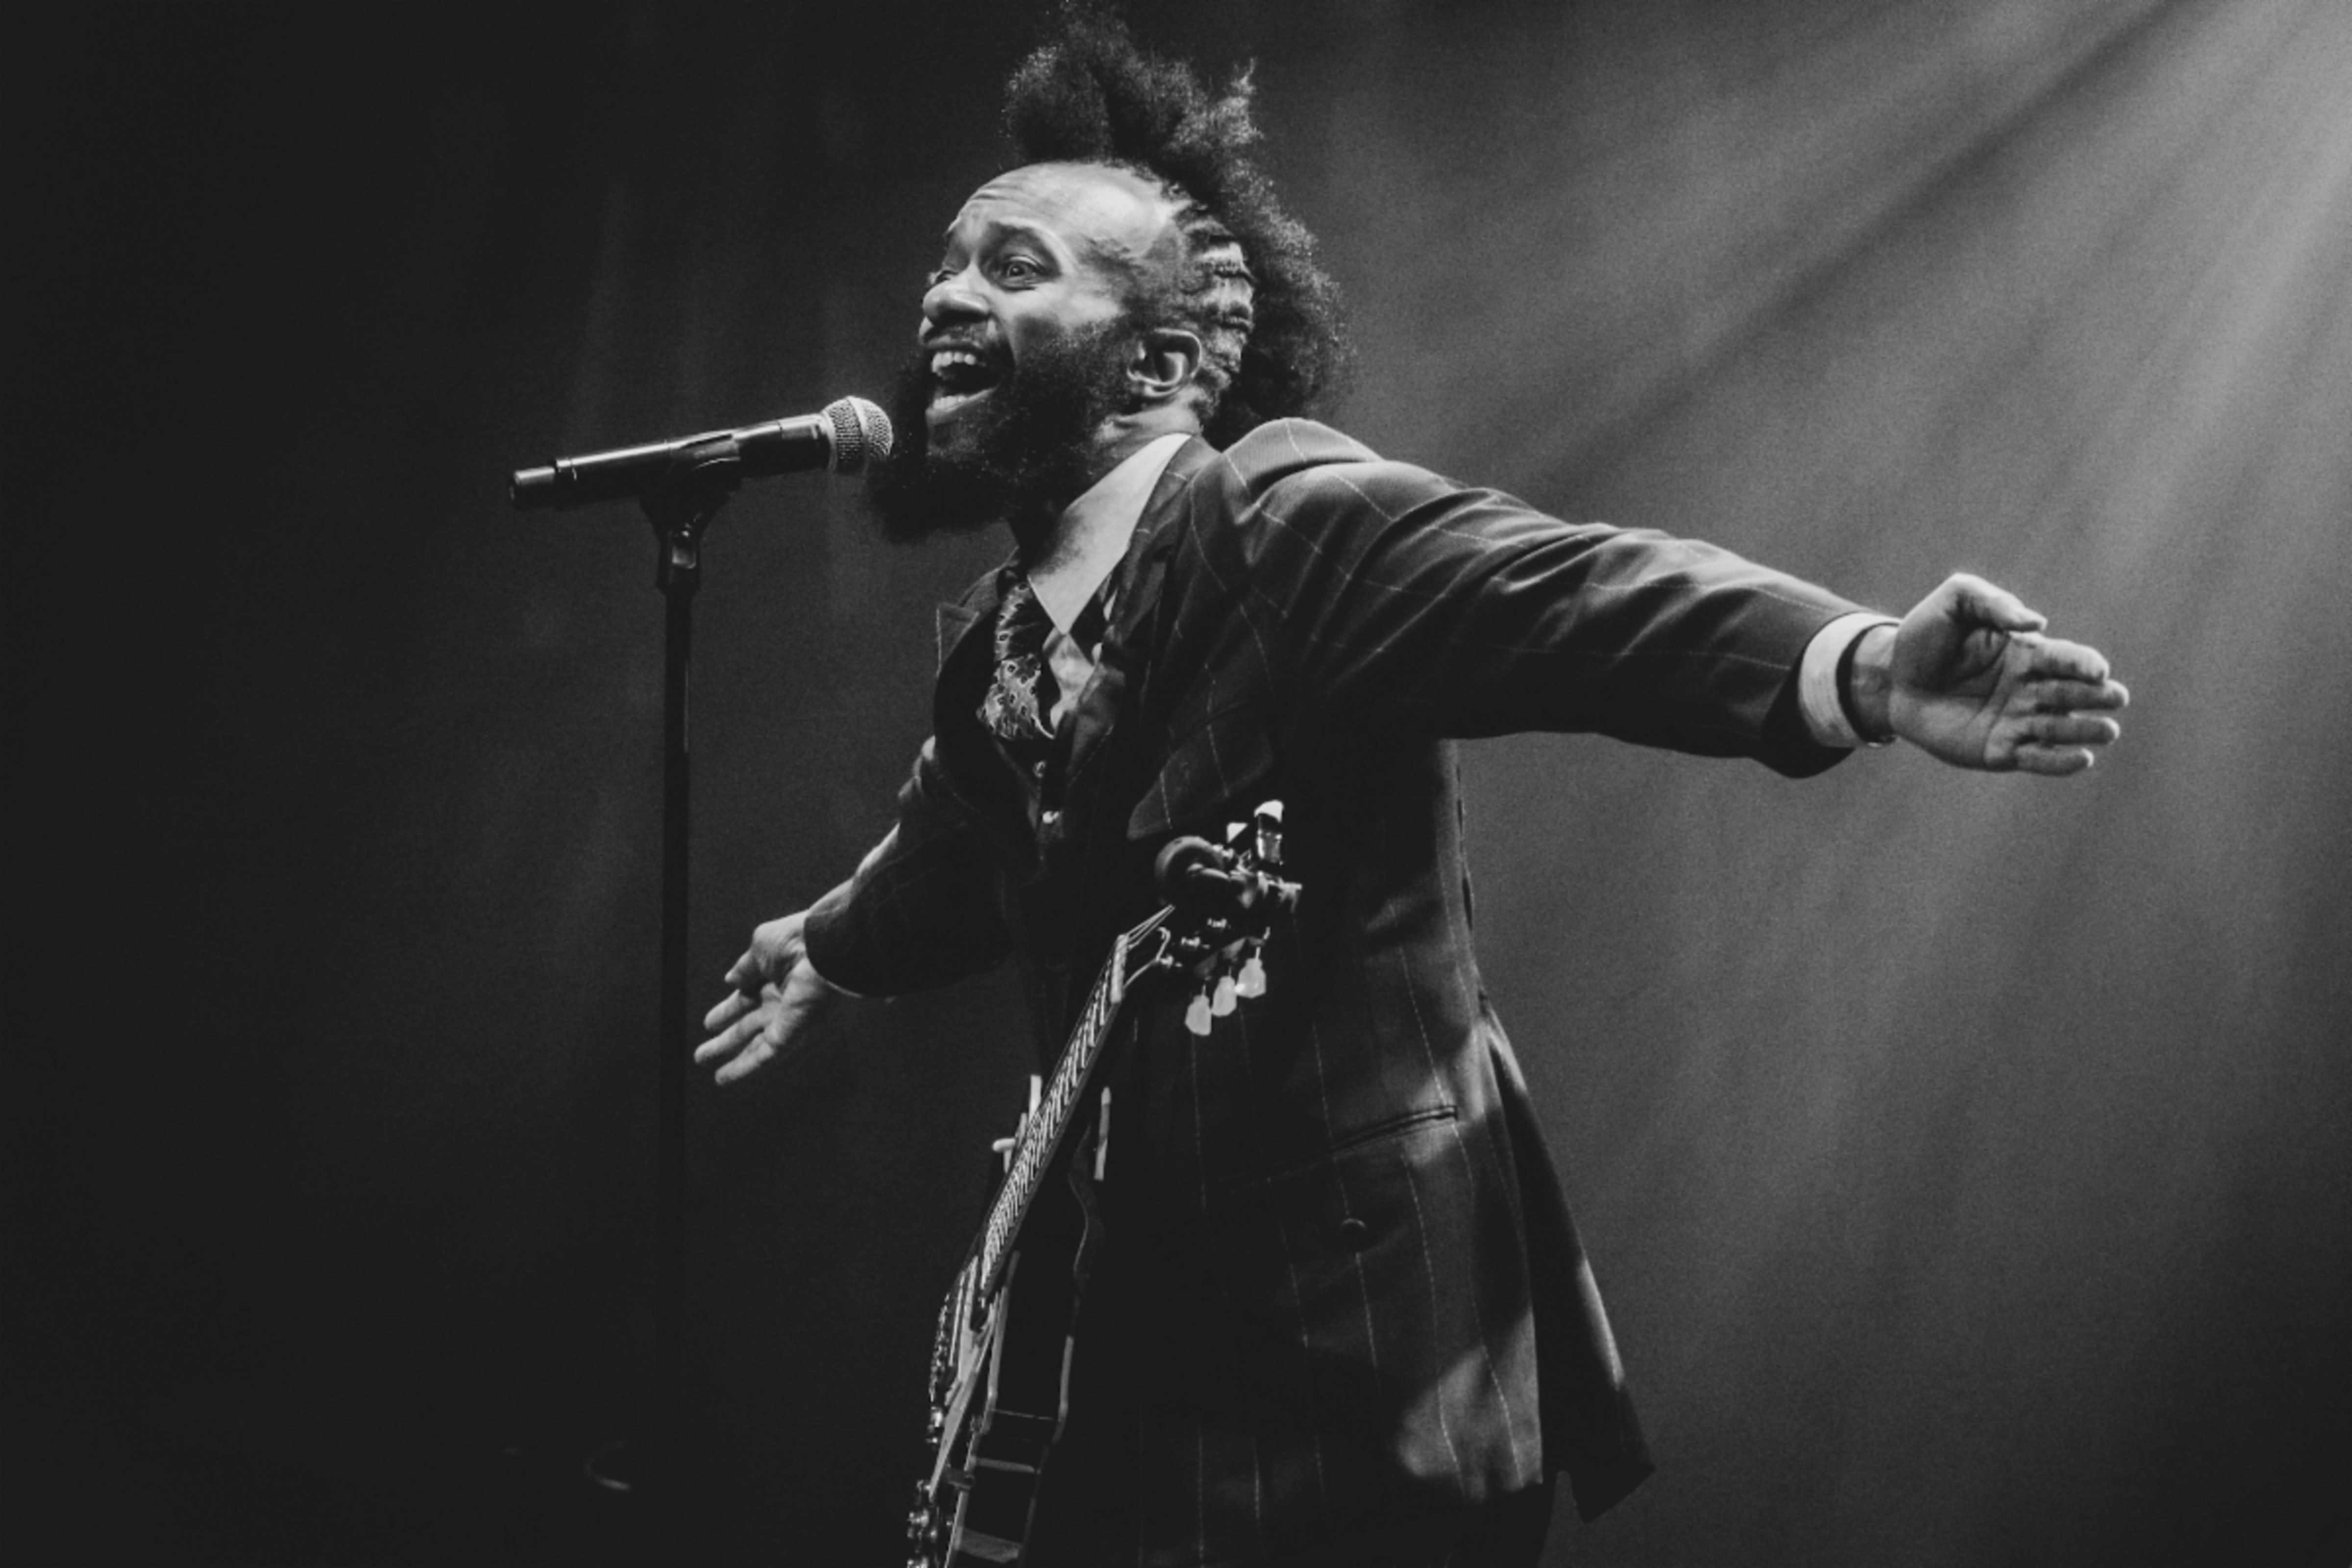 Fantastic Negrito performs Grammy-nominated album livestream at The Downtown Theatre